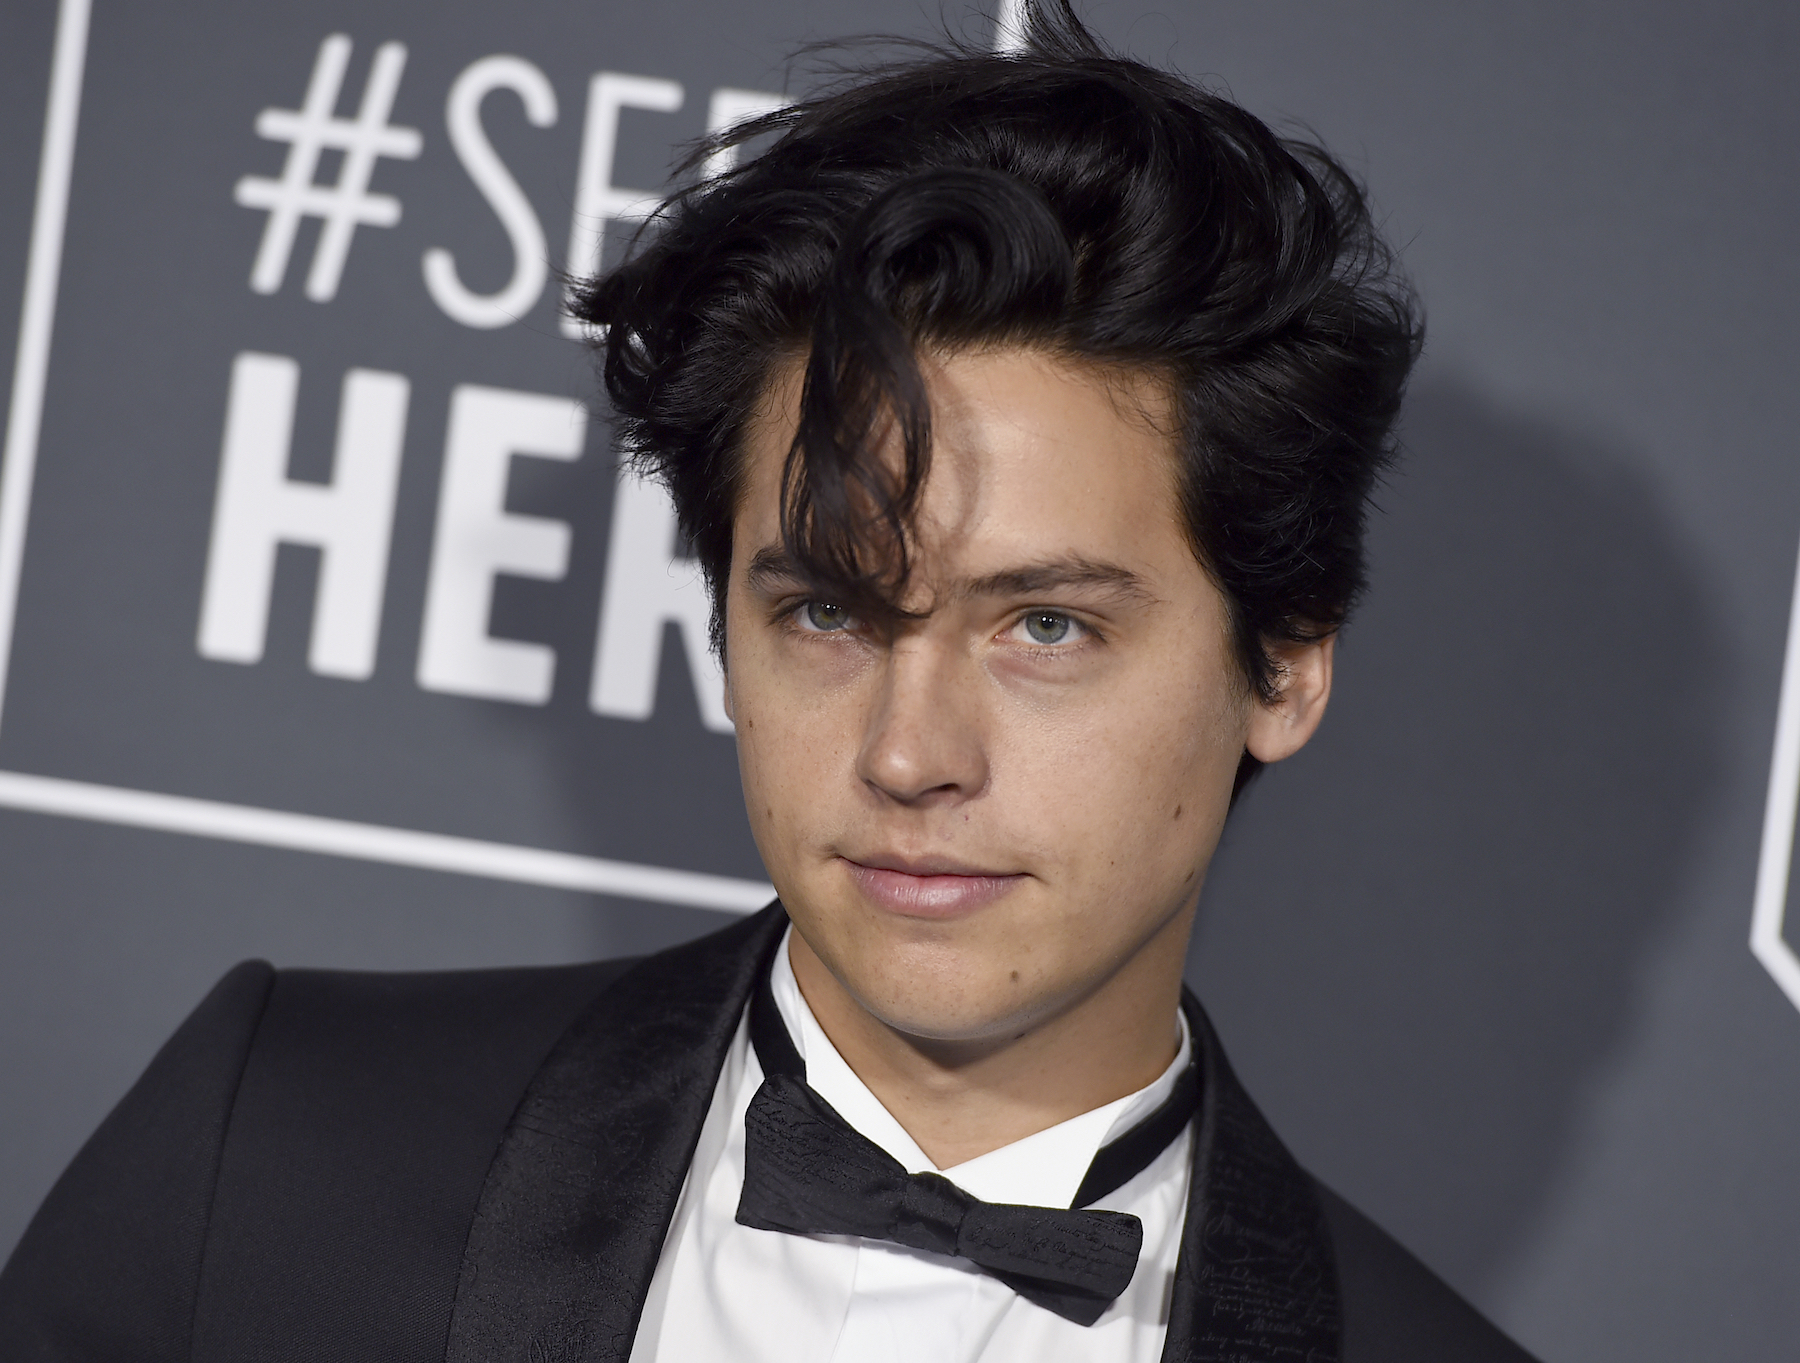 <div class='meta'><div class='origin-logo' data-origin='AP'></div><span class='caption-text' data-credit='Jordan Strauss/Invision/AP'>Cole Sprouse arrives at the 24th annual Critics' Choice Awards on Sunday, Jan. 13, 2019, at the Barker Hangar in Santa Monica, Calif.</span></div>